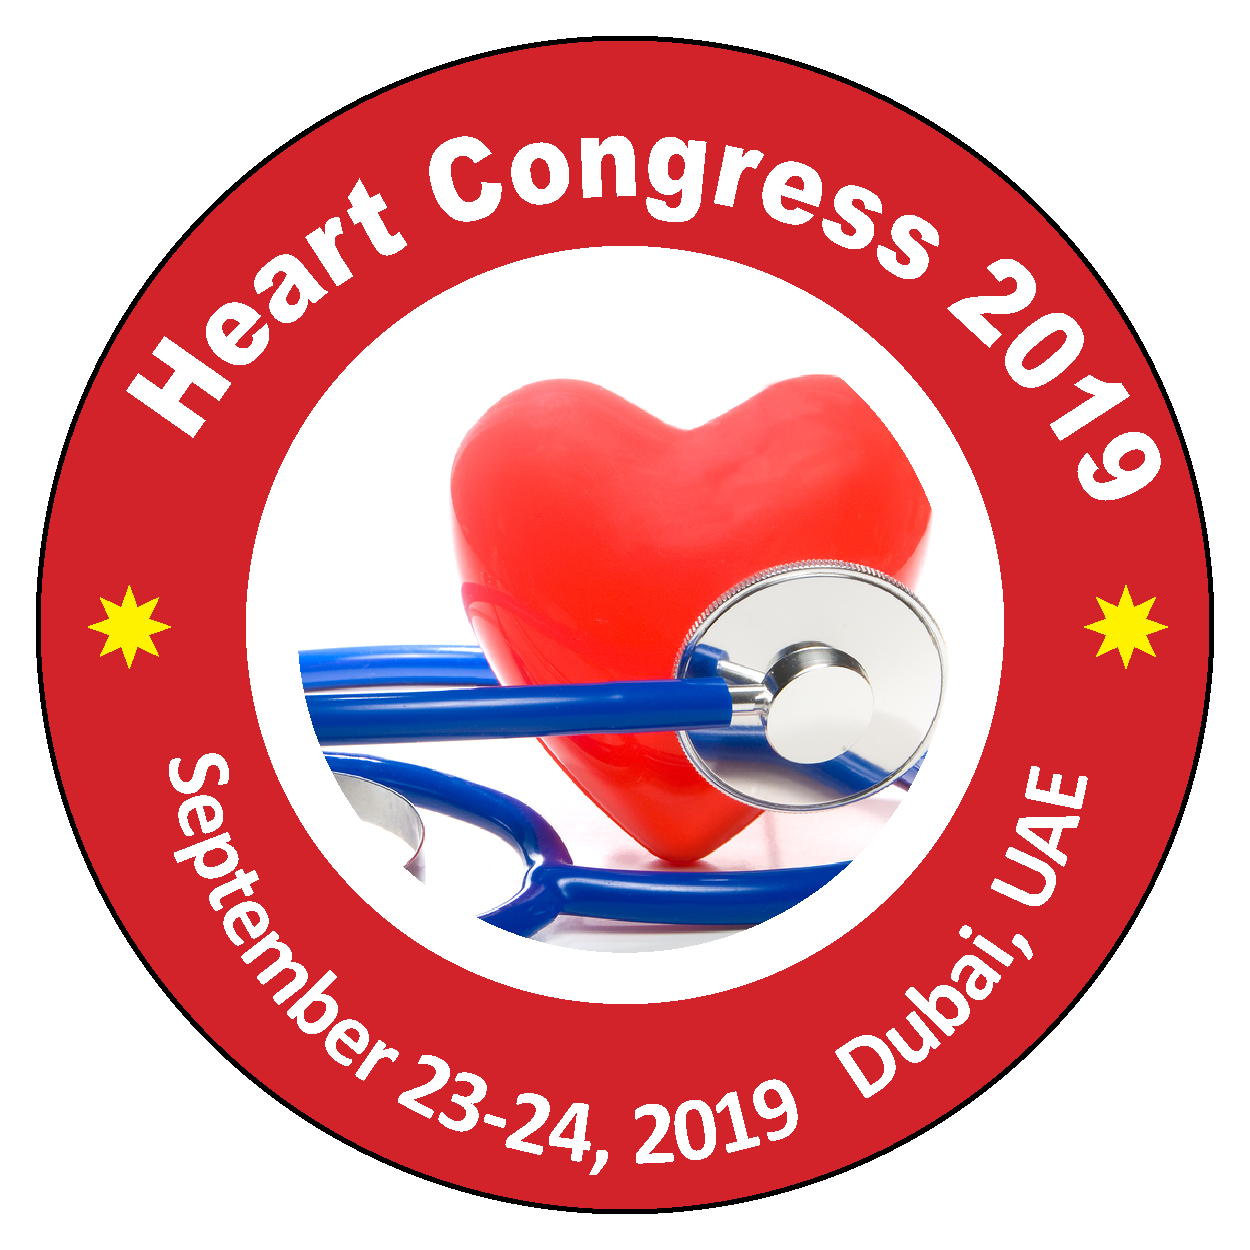 https://heartcongress.pulsusconference.com/